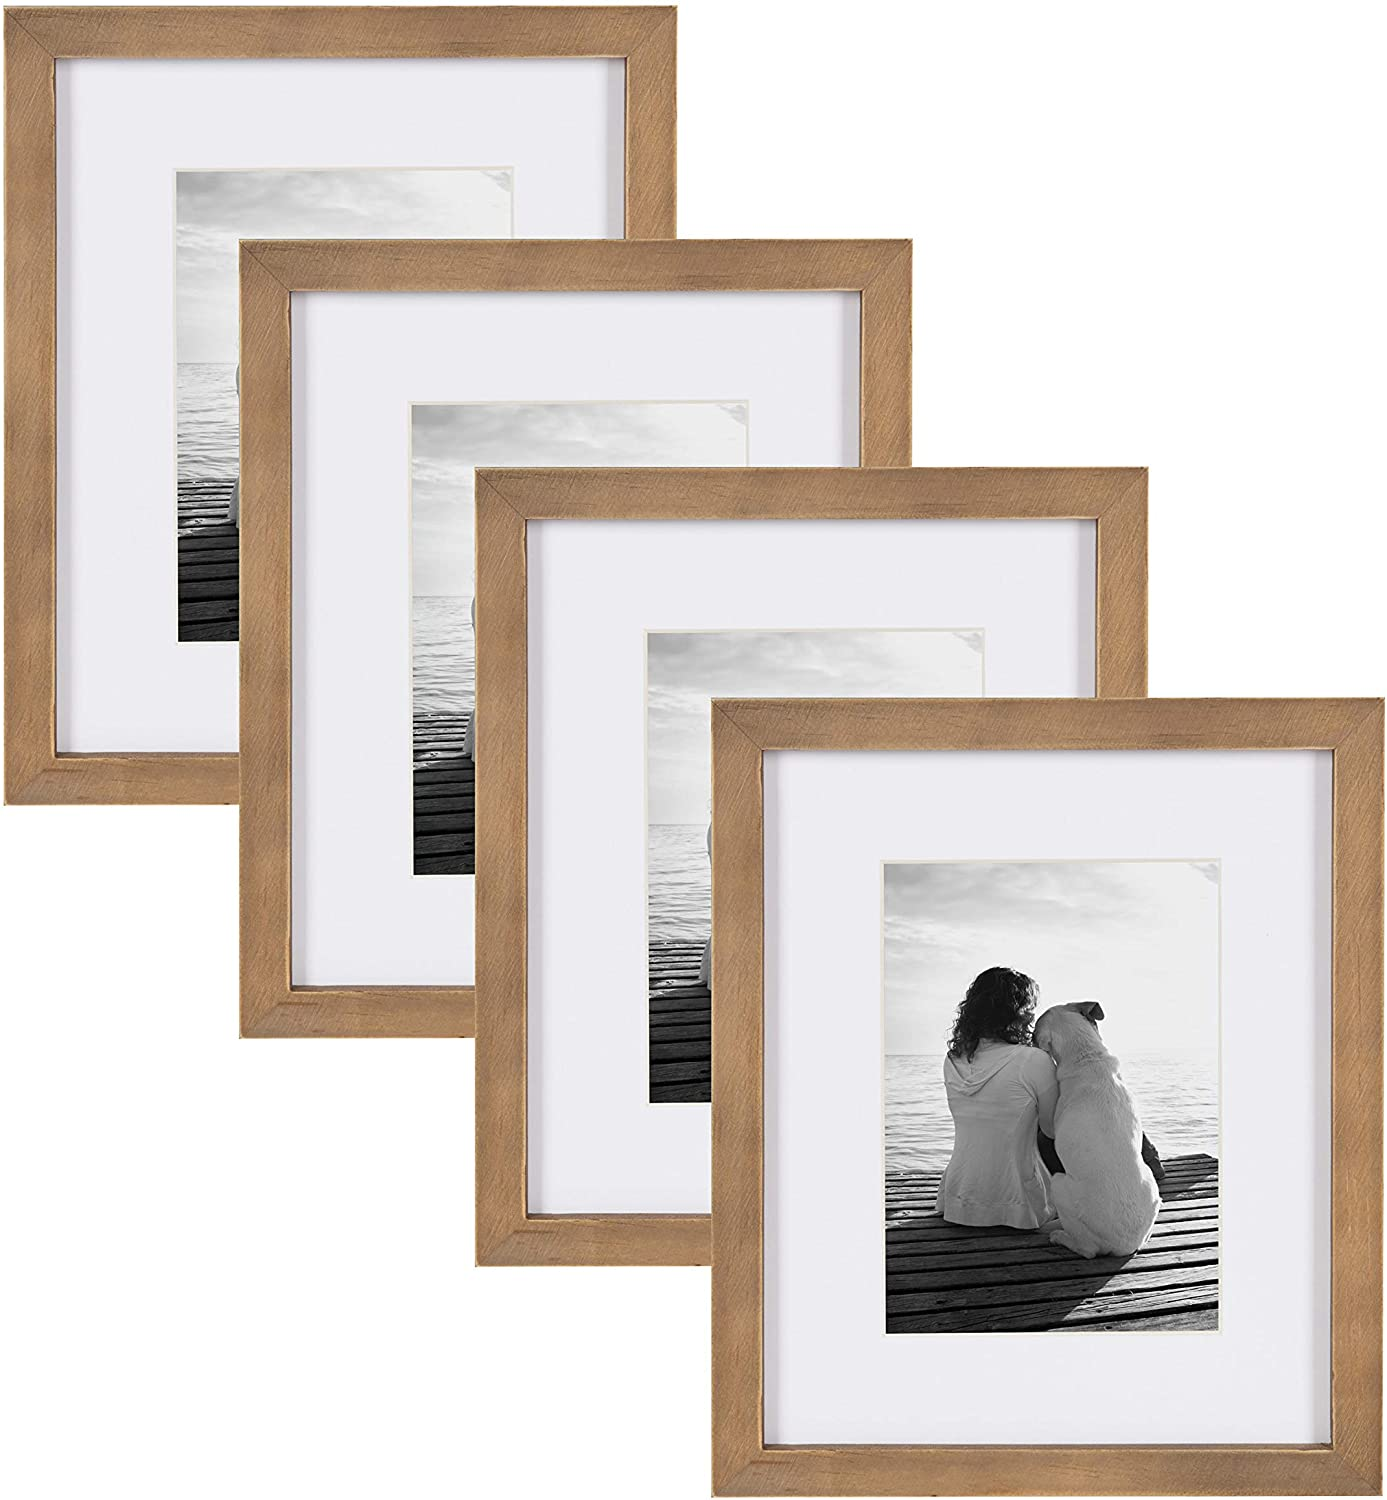 DesignOvation Gallery 8x10 matted to 5x7 Wood Picture Frame, Set of 4, Rustic Brown, 4 Count